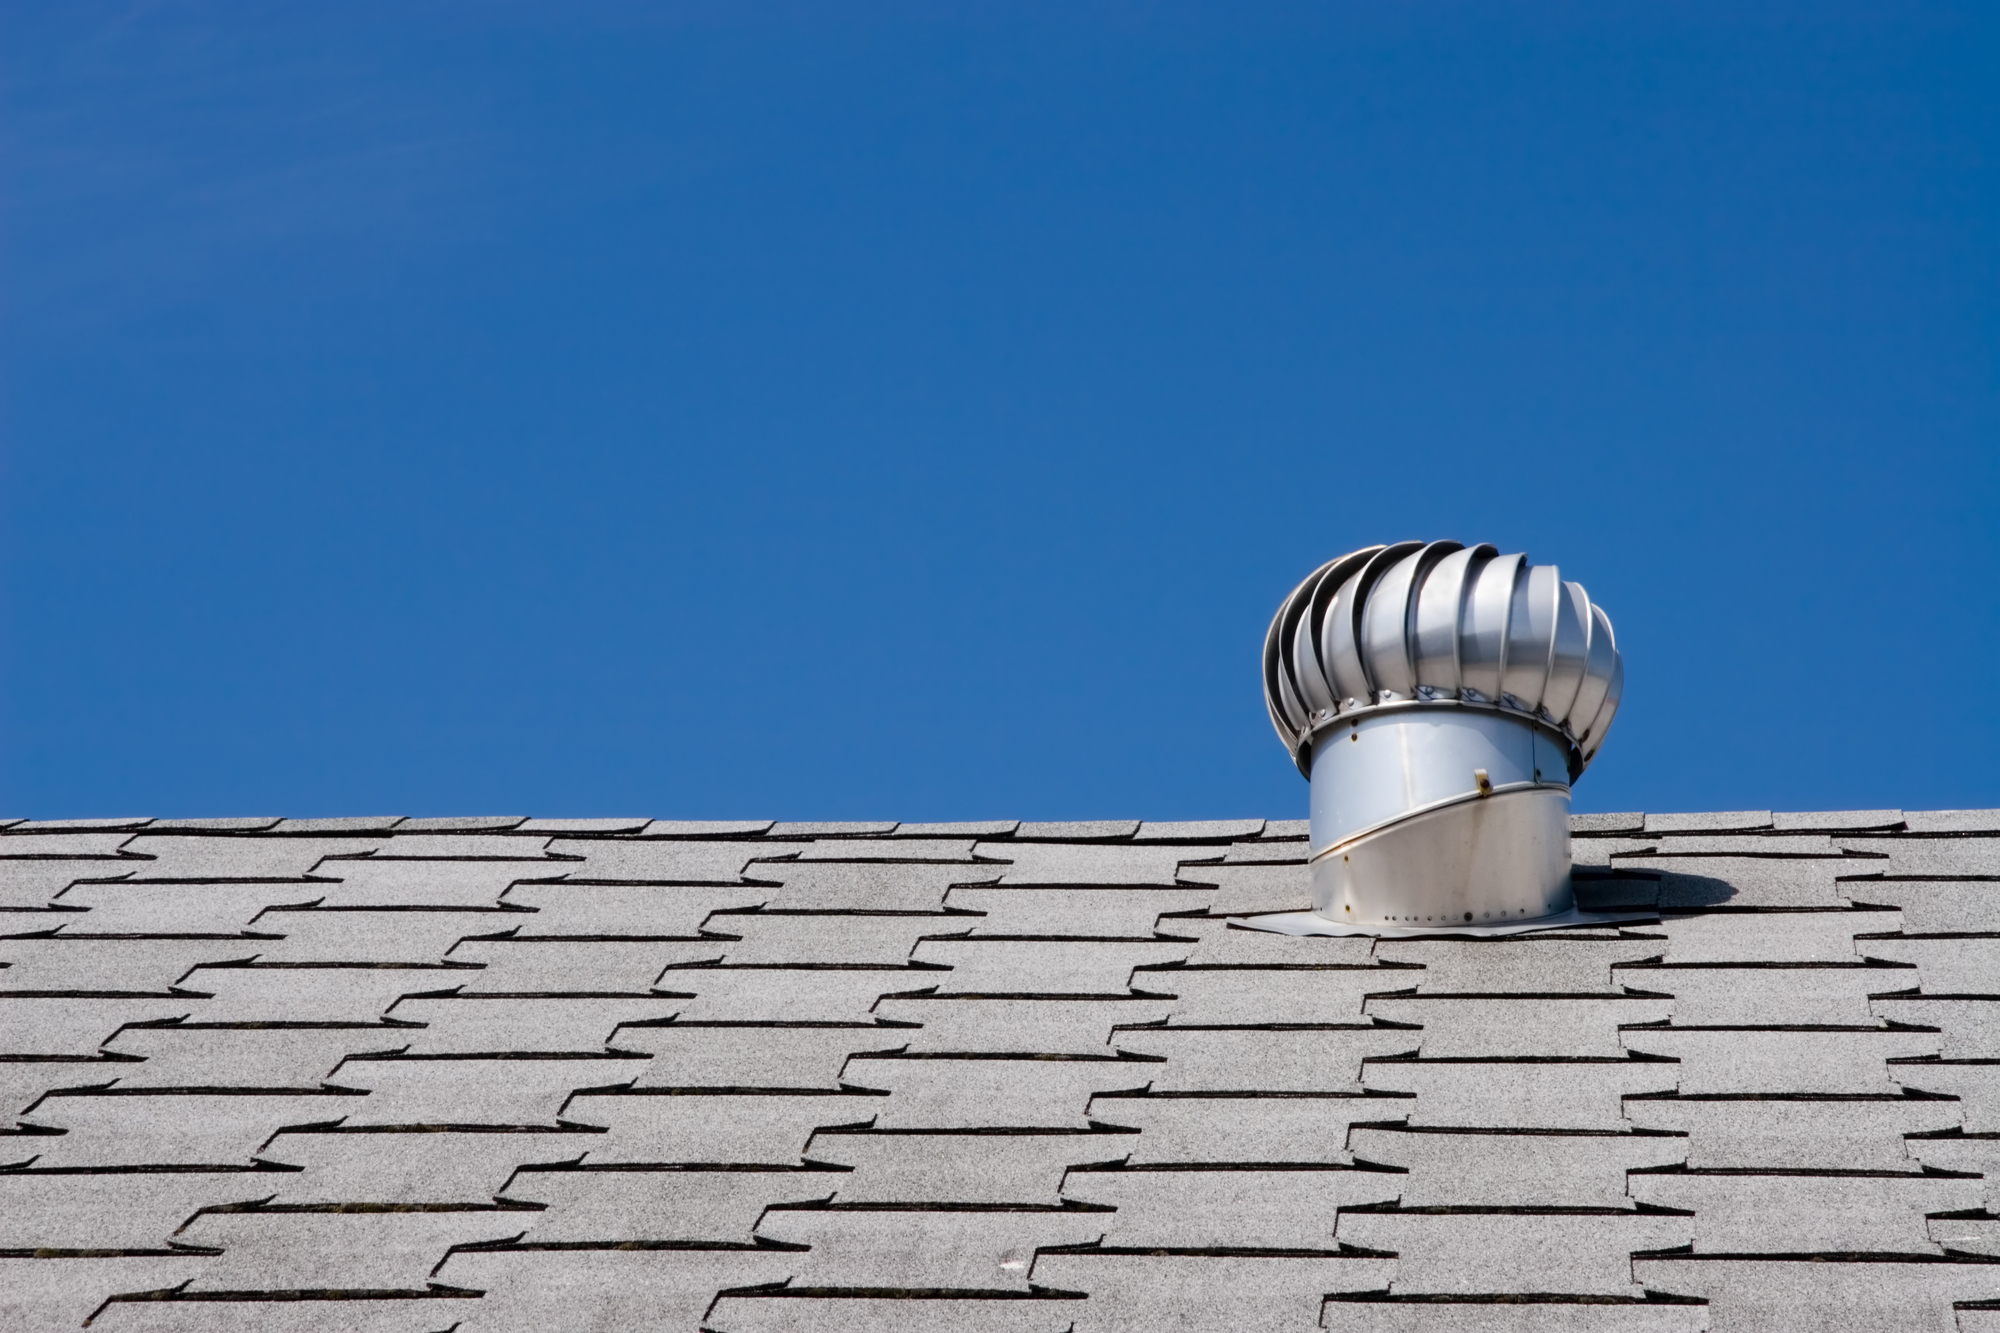 Roof of commercial building with exhaust vent.